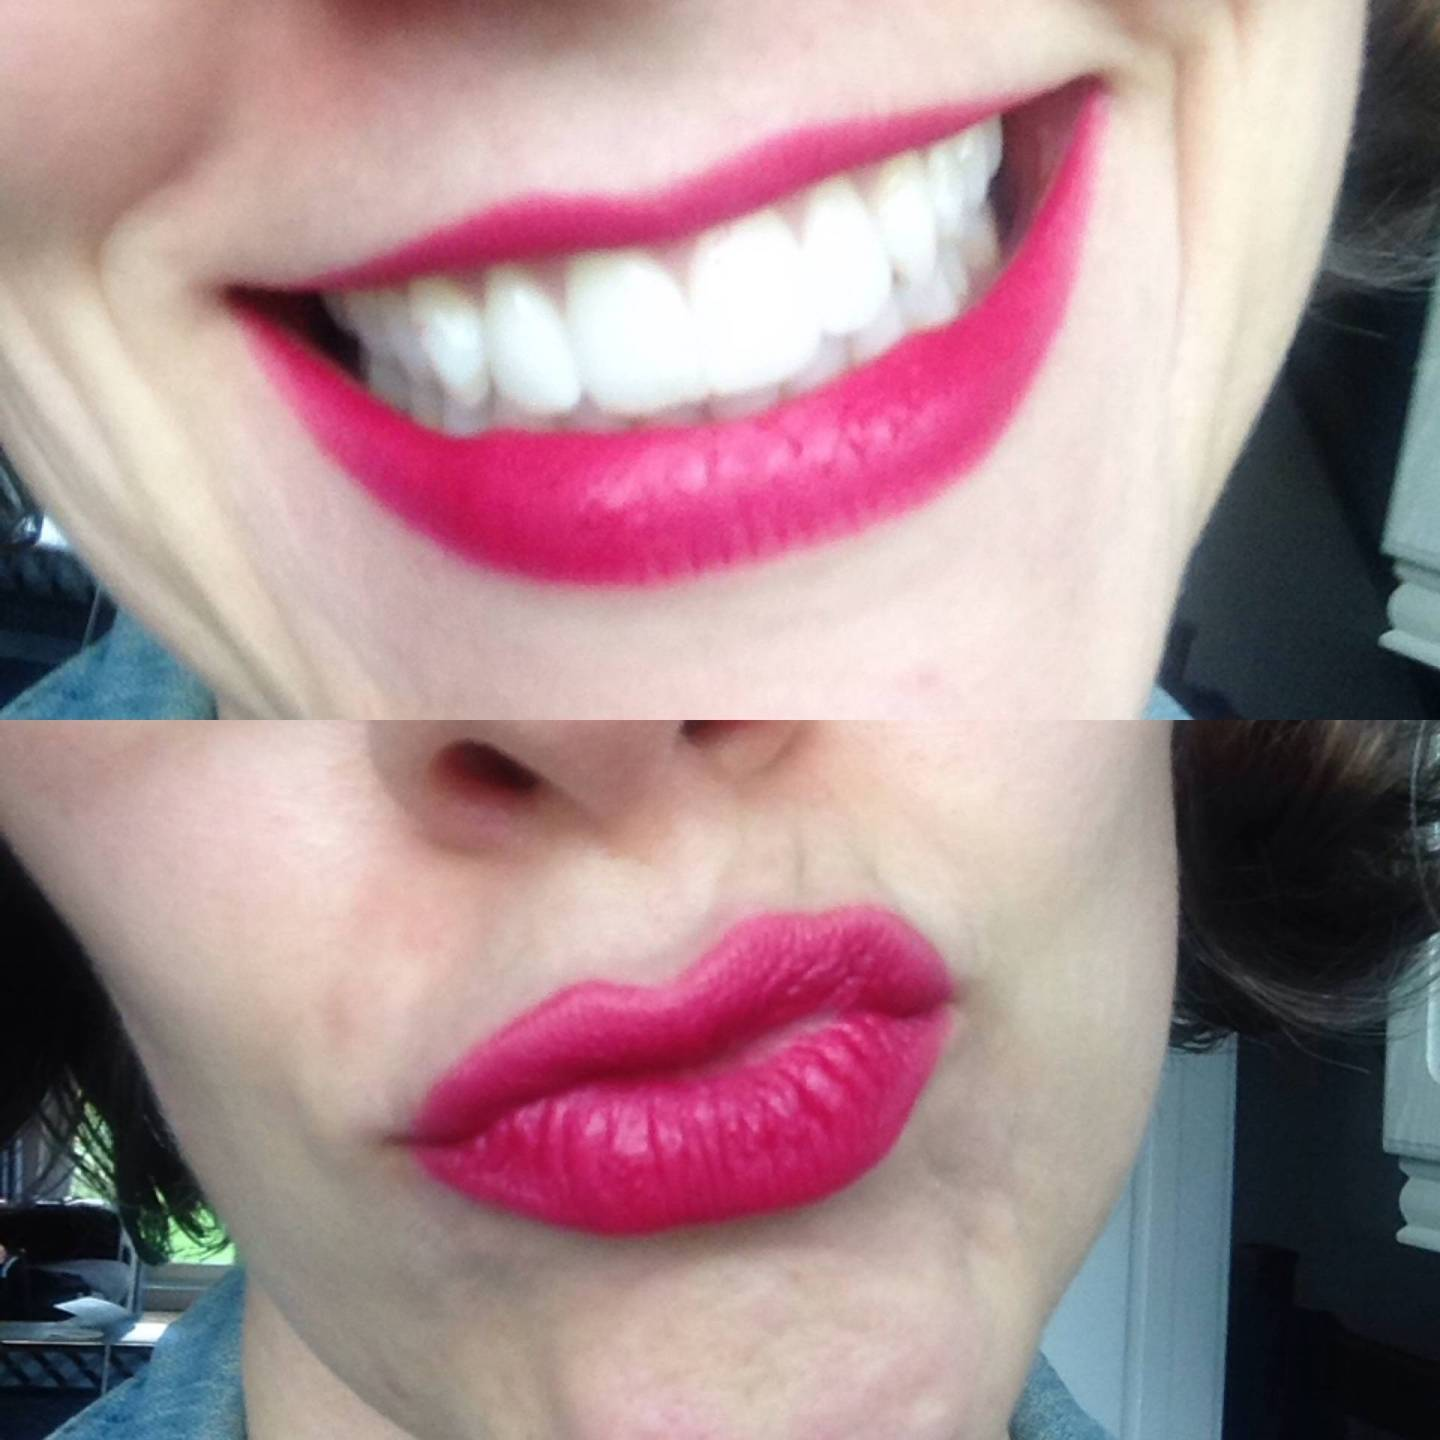 Currently wearing Colorisi lipstick in Cerise..